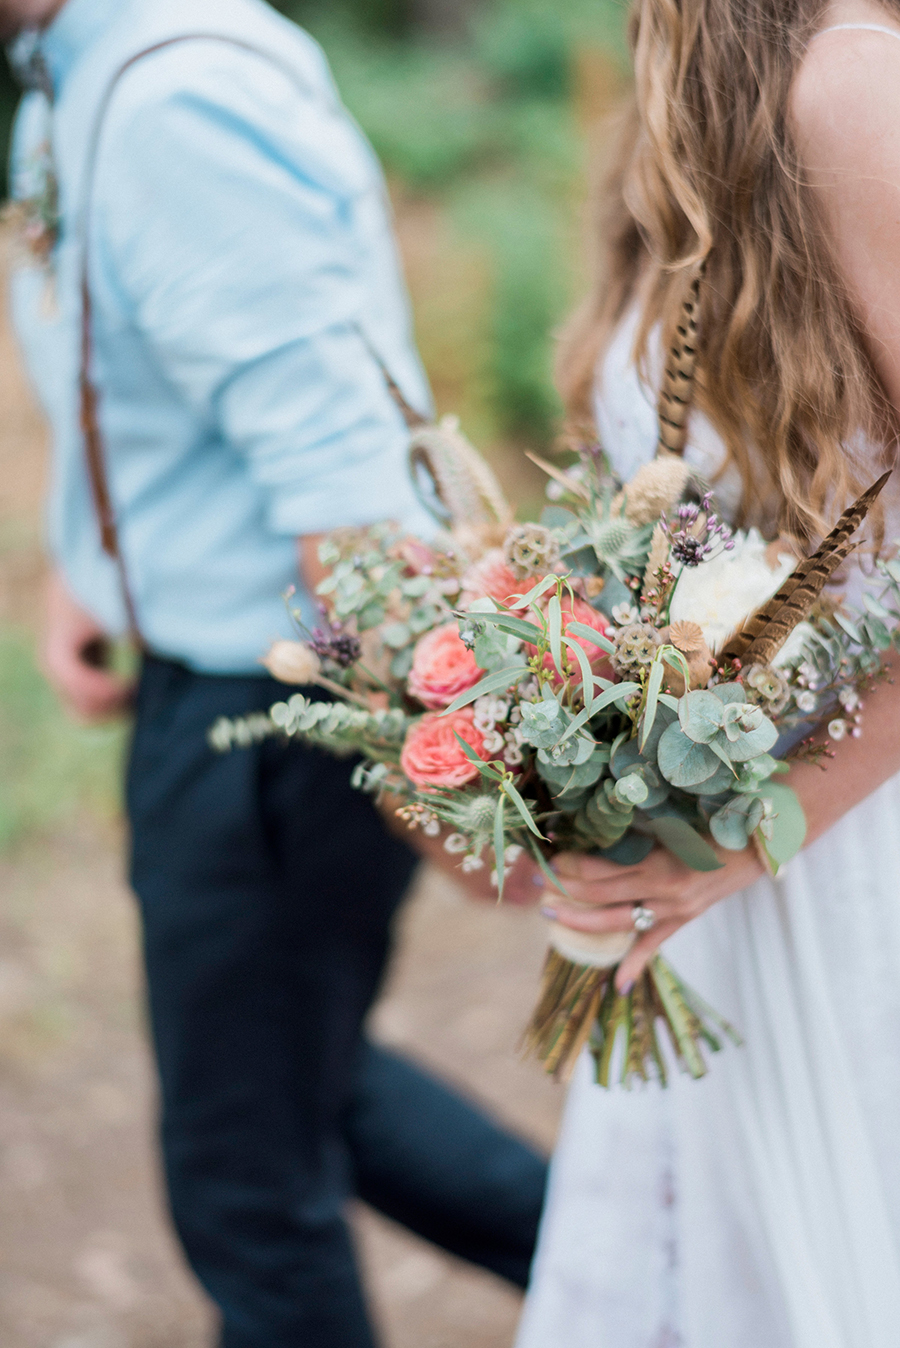 Dreamy boho wedding at Houchins Farm with images by Kathryn Hopkins Photography (31)